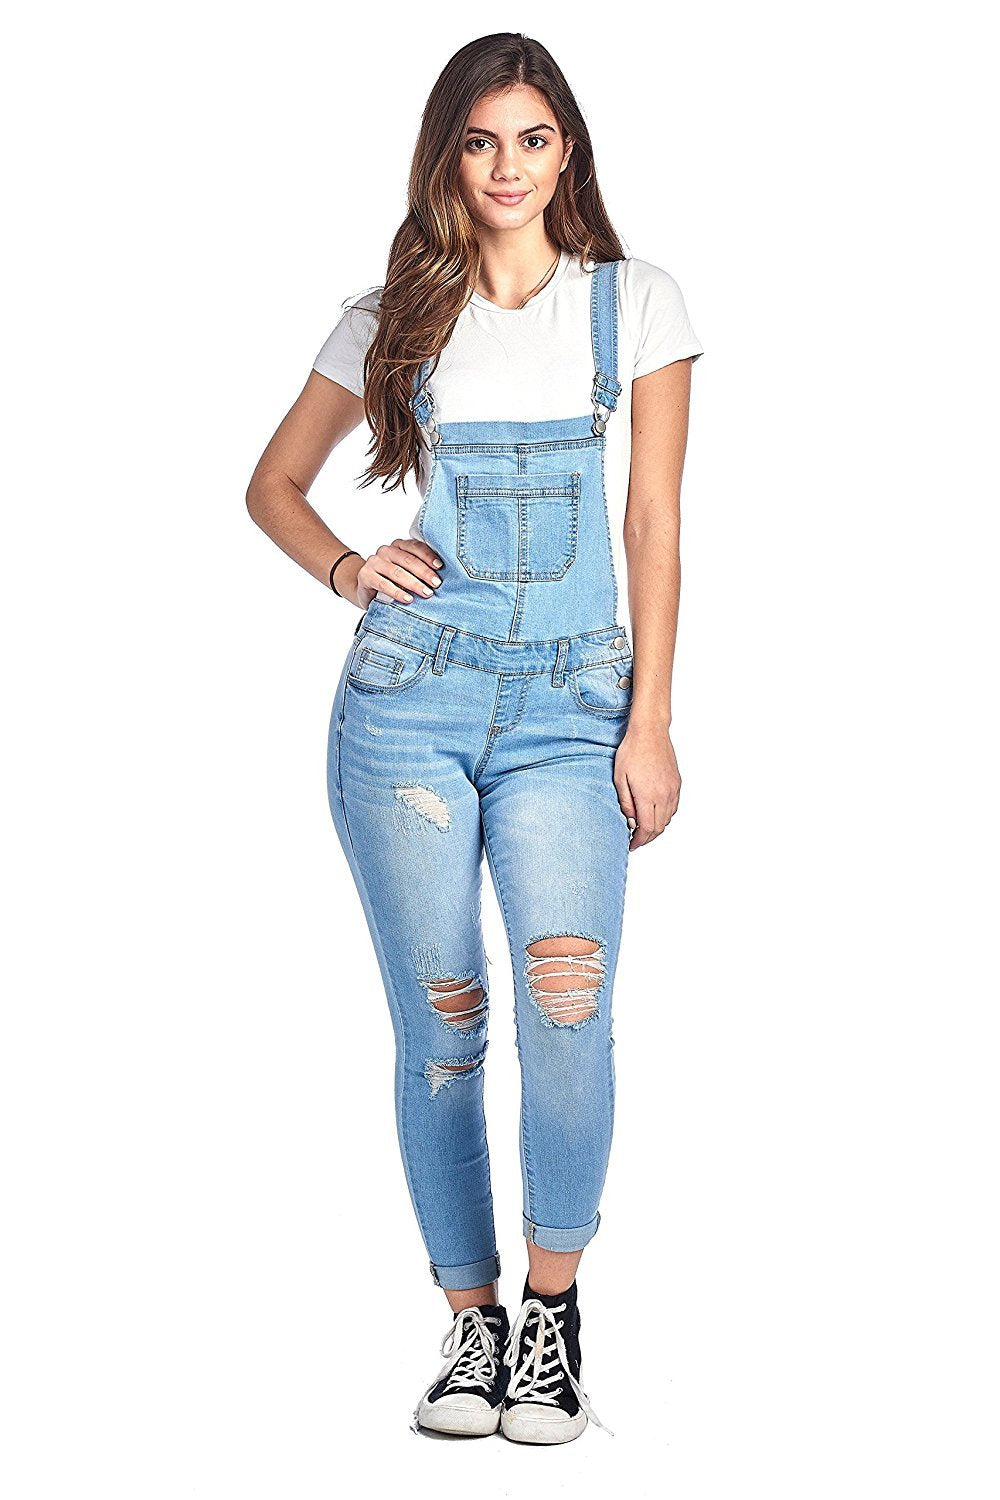 Khanomak Denim Distressed Rolled Cuff Ankle Length Adjustable Straps Skinny Jean Overalls